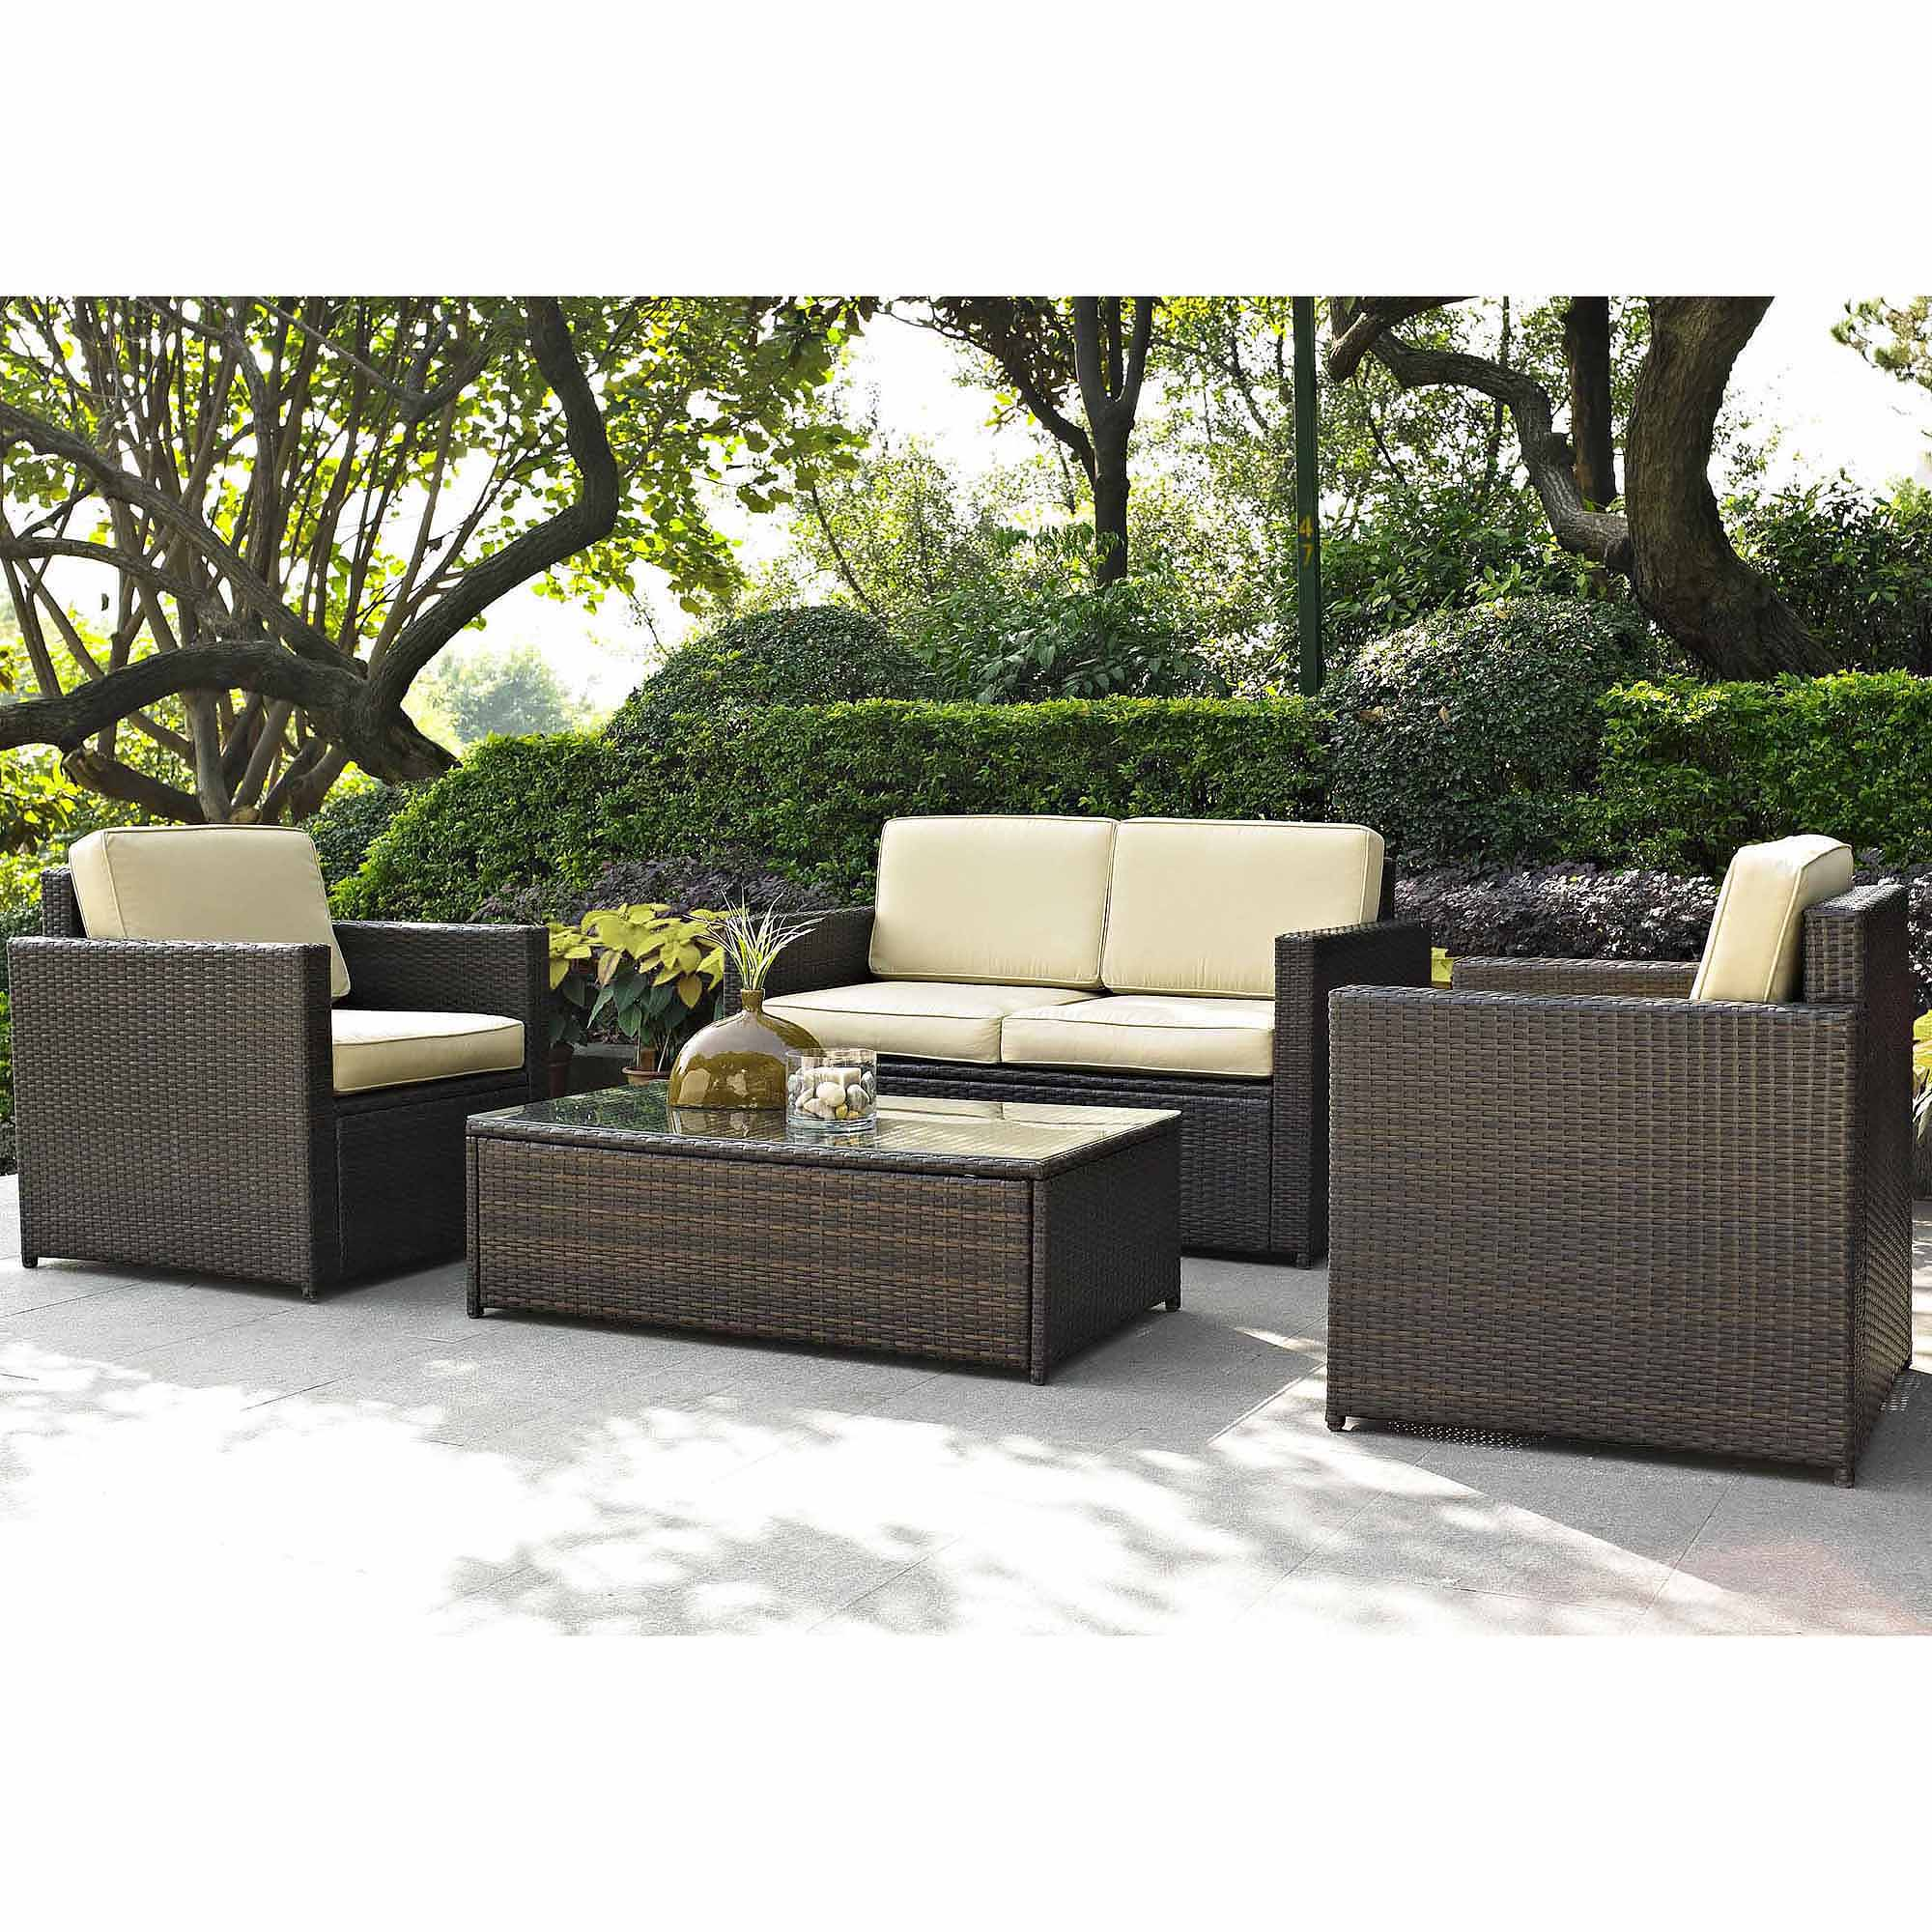 Contemporary Best Choice Products 4pc Wicker Outdoor Patio Furniture Set Cushioned Seats wicker outdoor furniture sets